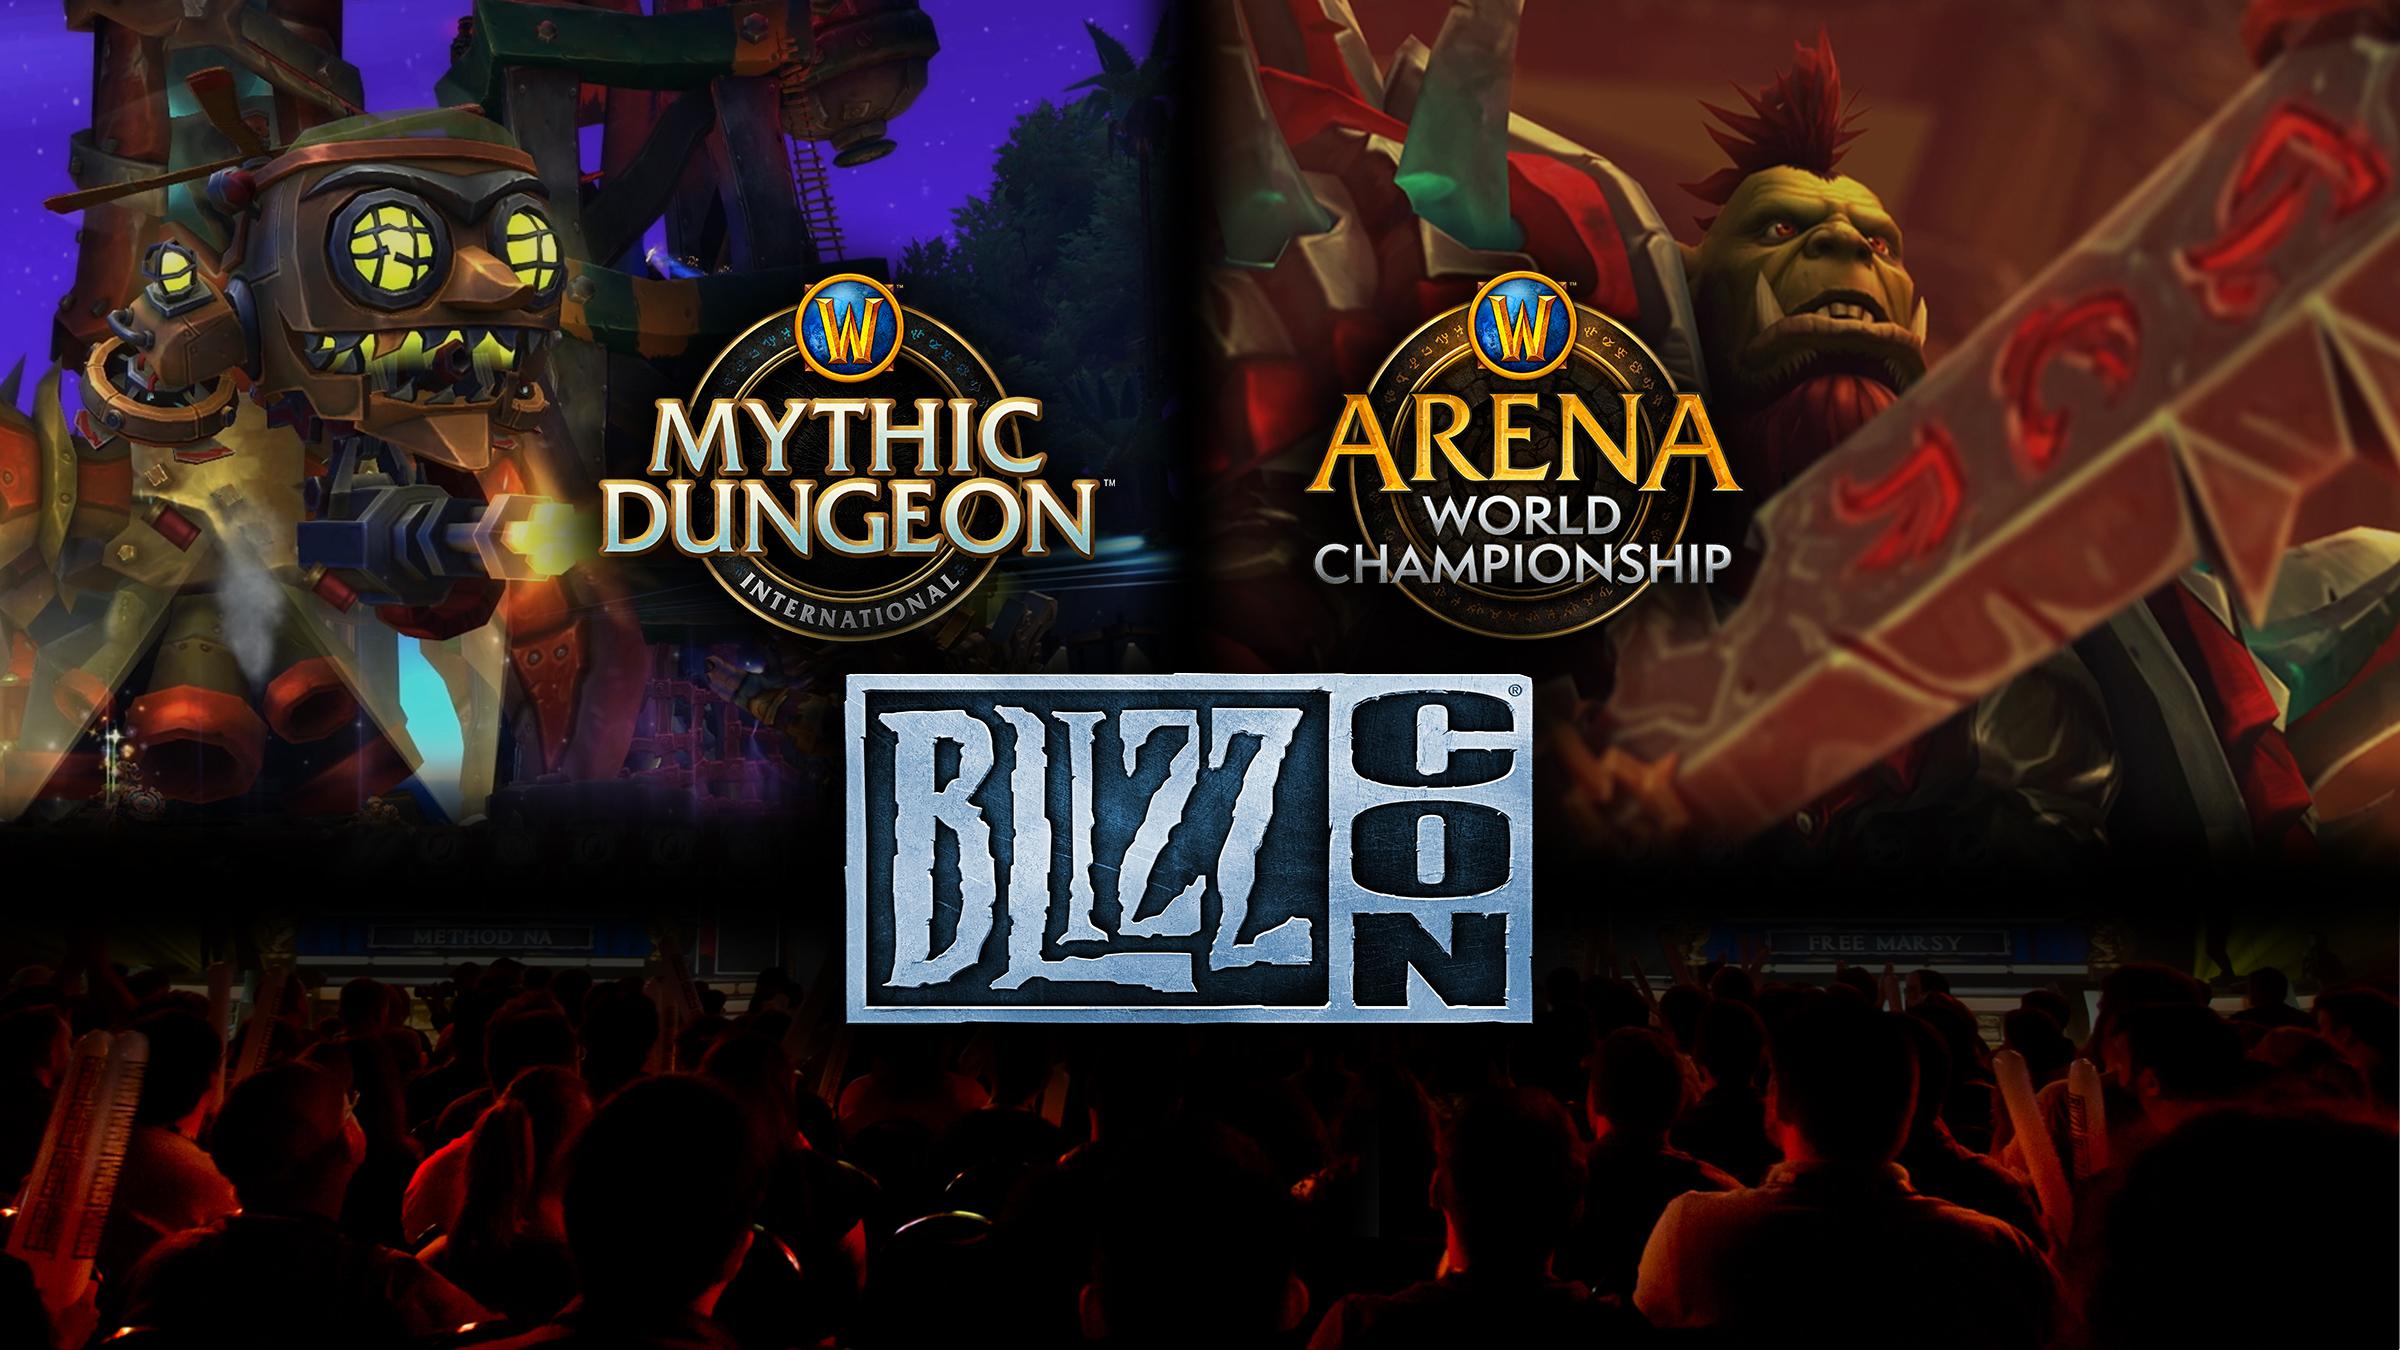 L'e-sport de World of Warcraft à la BlizzCon 2019